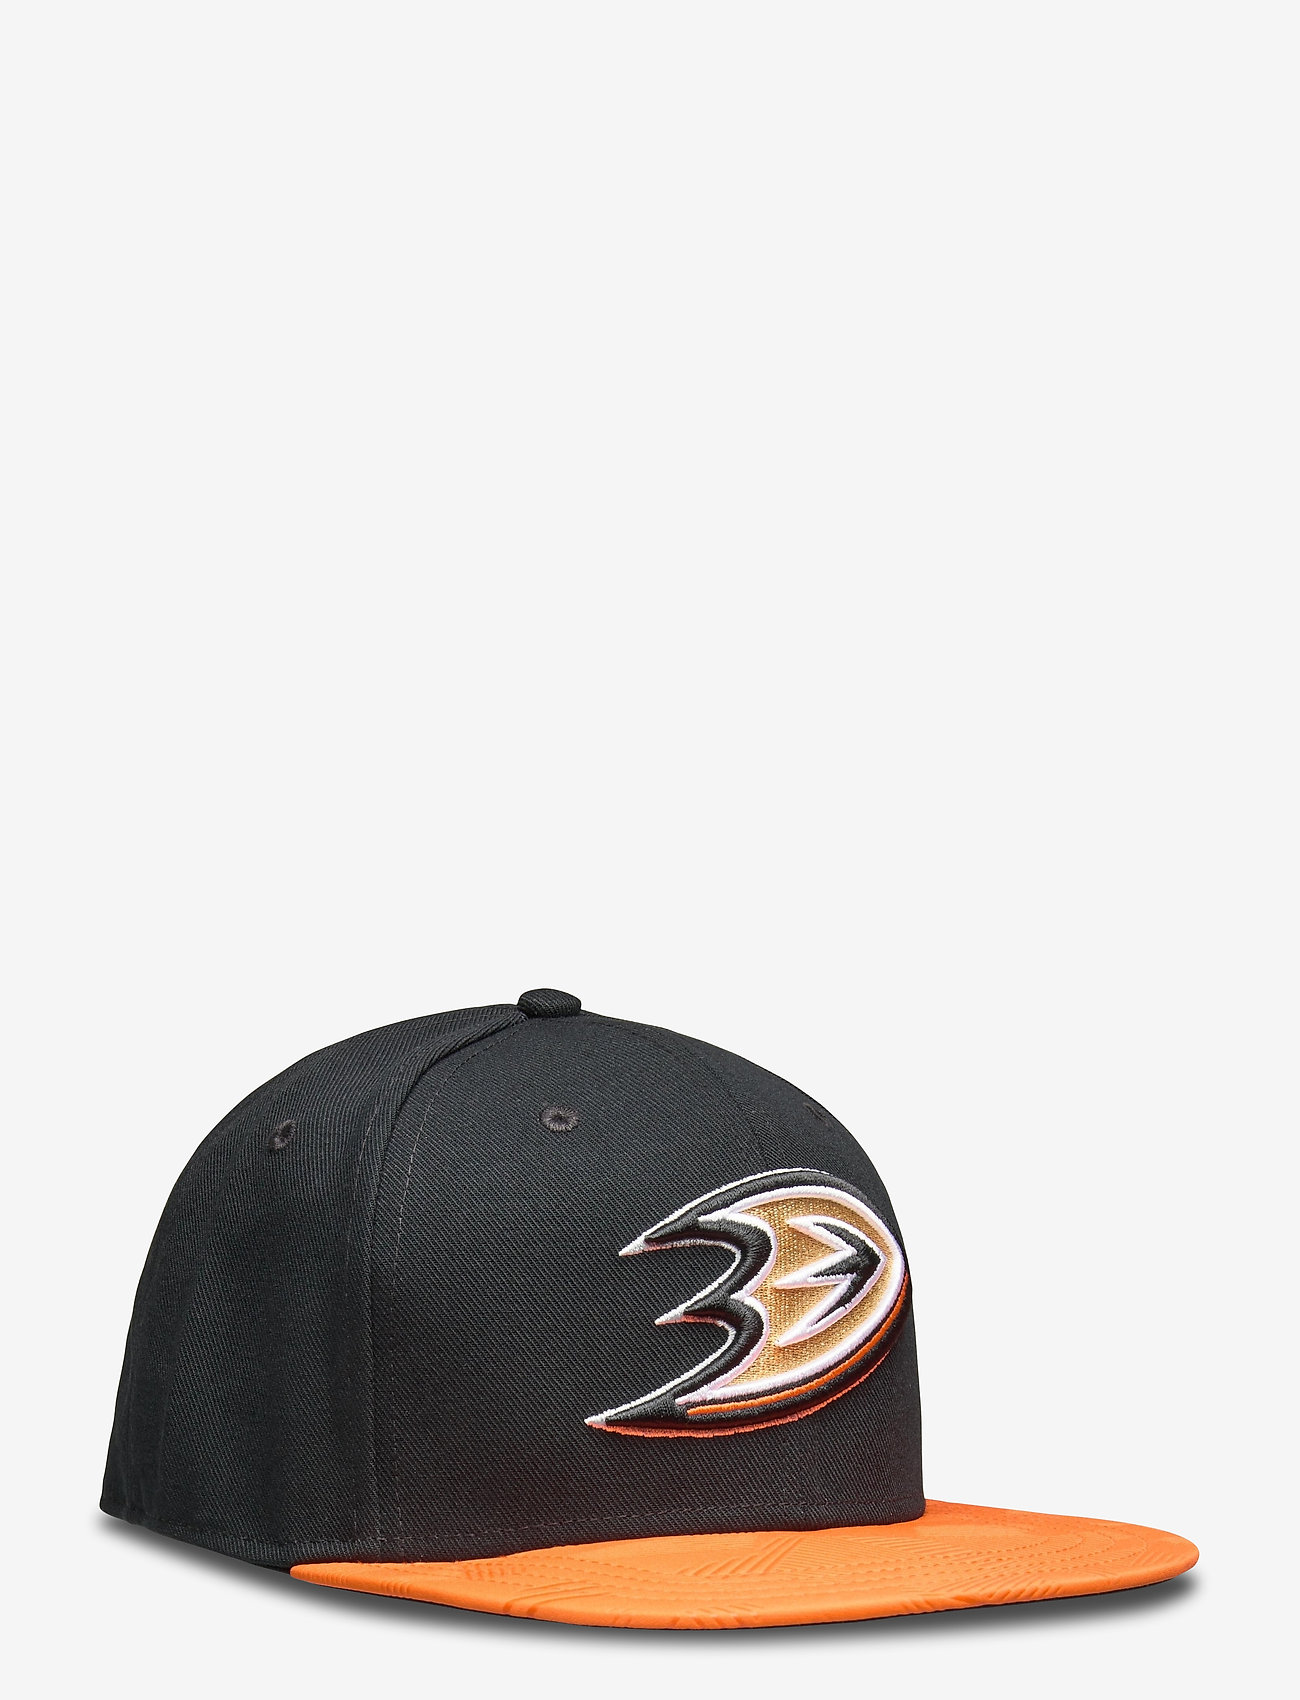 Fanatics - Anaheim Ducks Iconic Defender Snapback Cap - petten - black/dark orange - 0